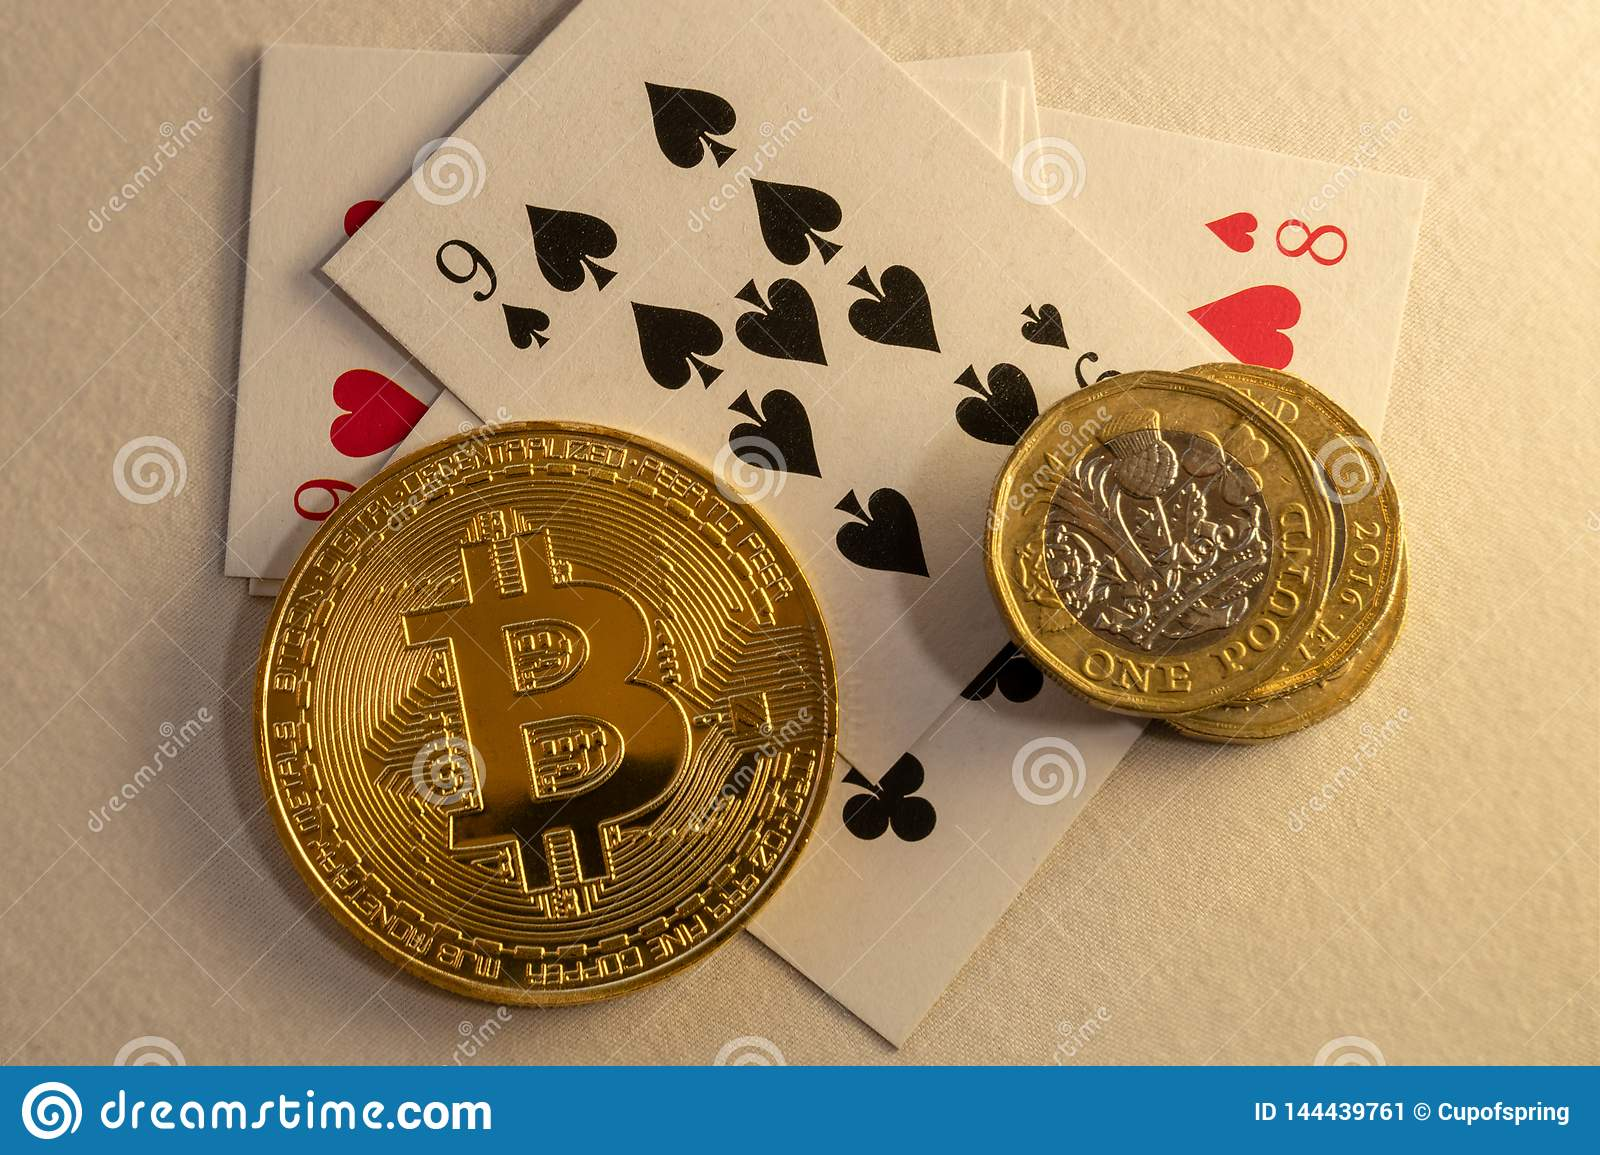 Bitcoins laying down on the table with bunch of coins and cards in the background. Online gambling concepts